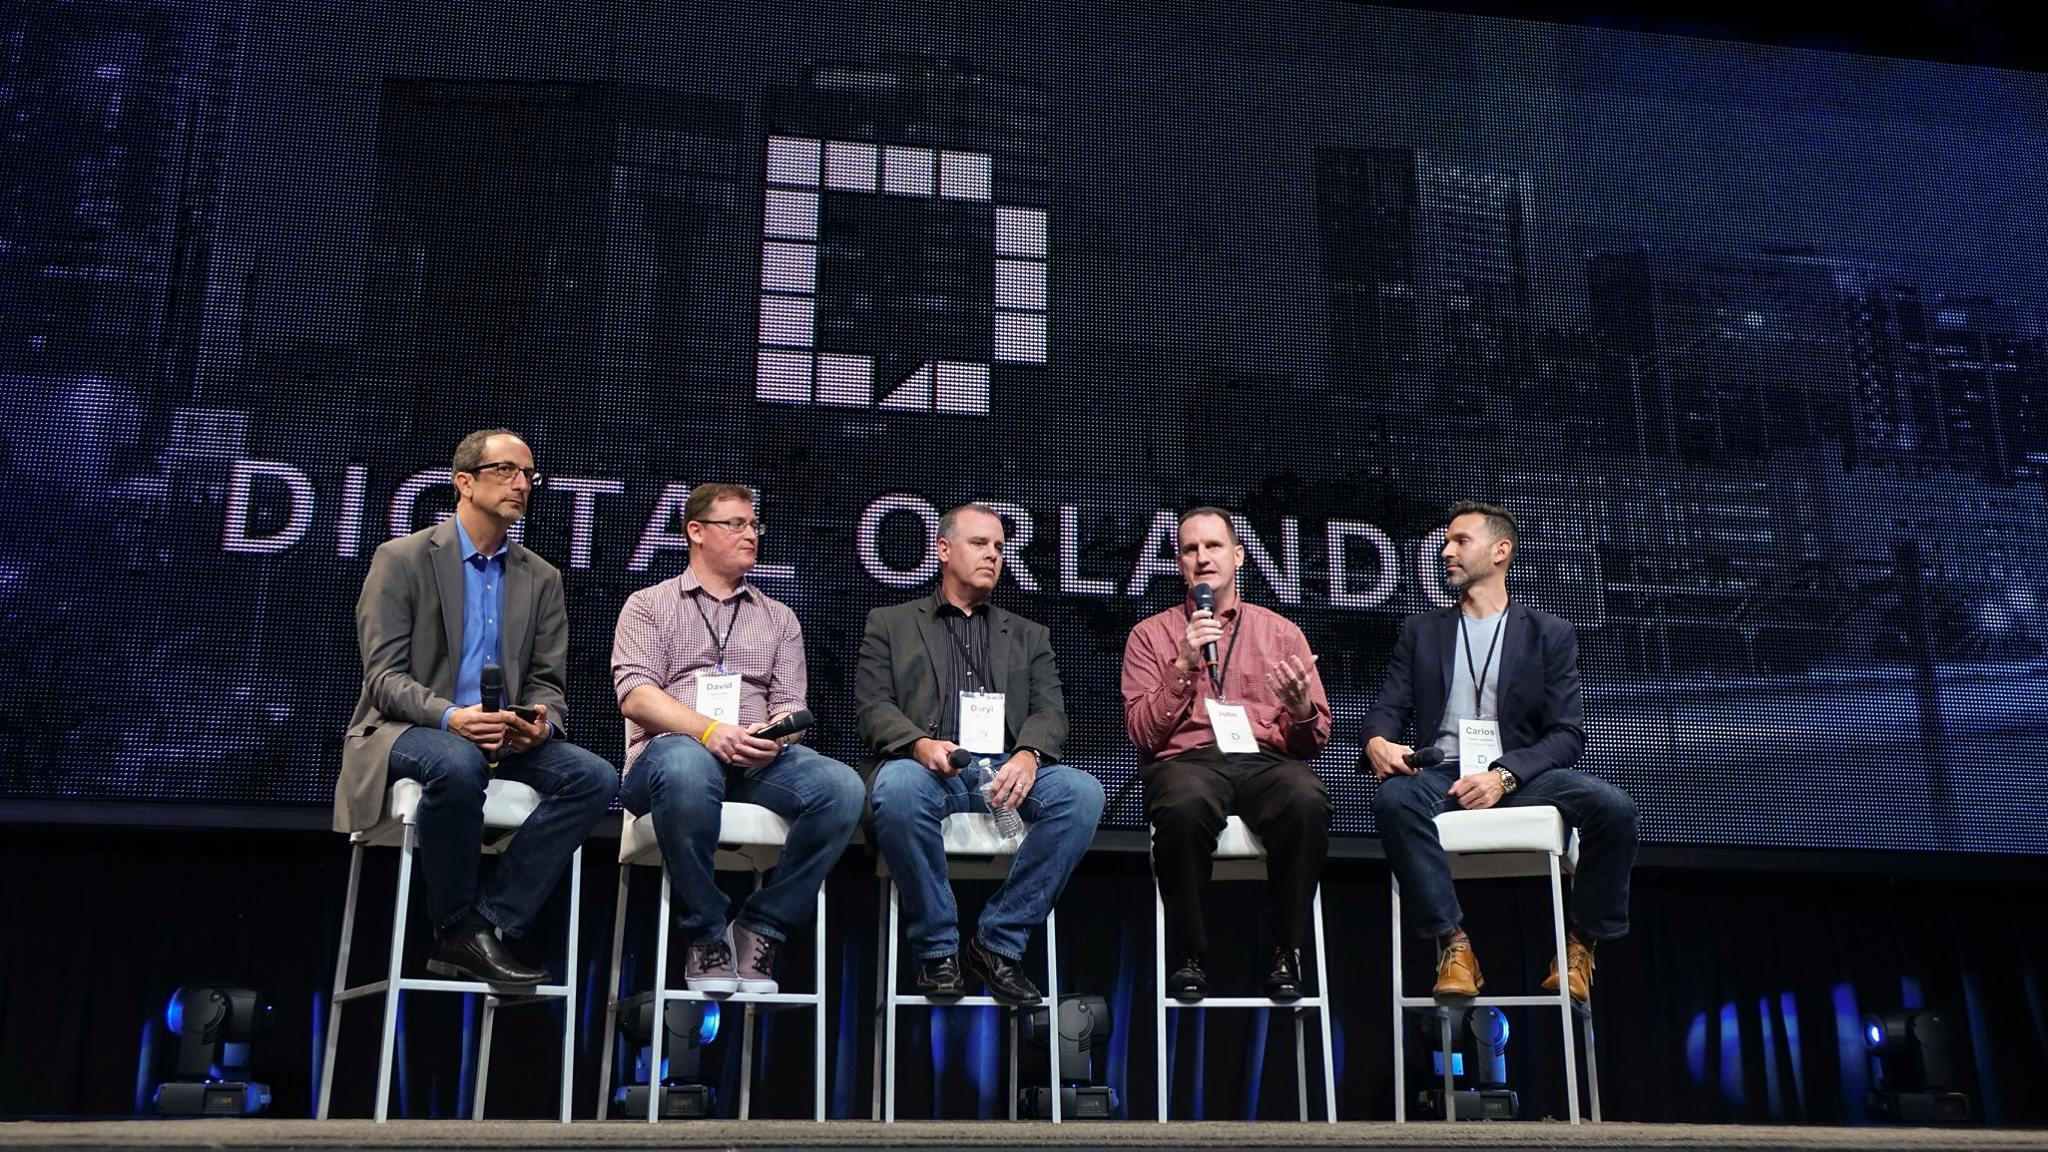 David C. Glass on a panel discussion at Digital Orlando 2016